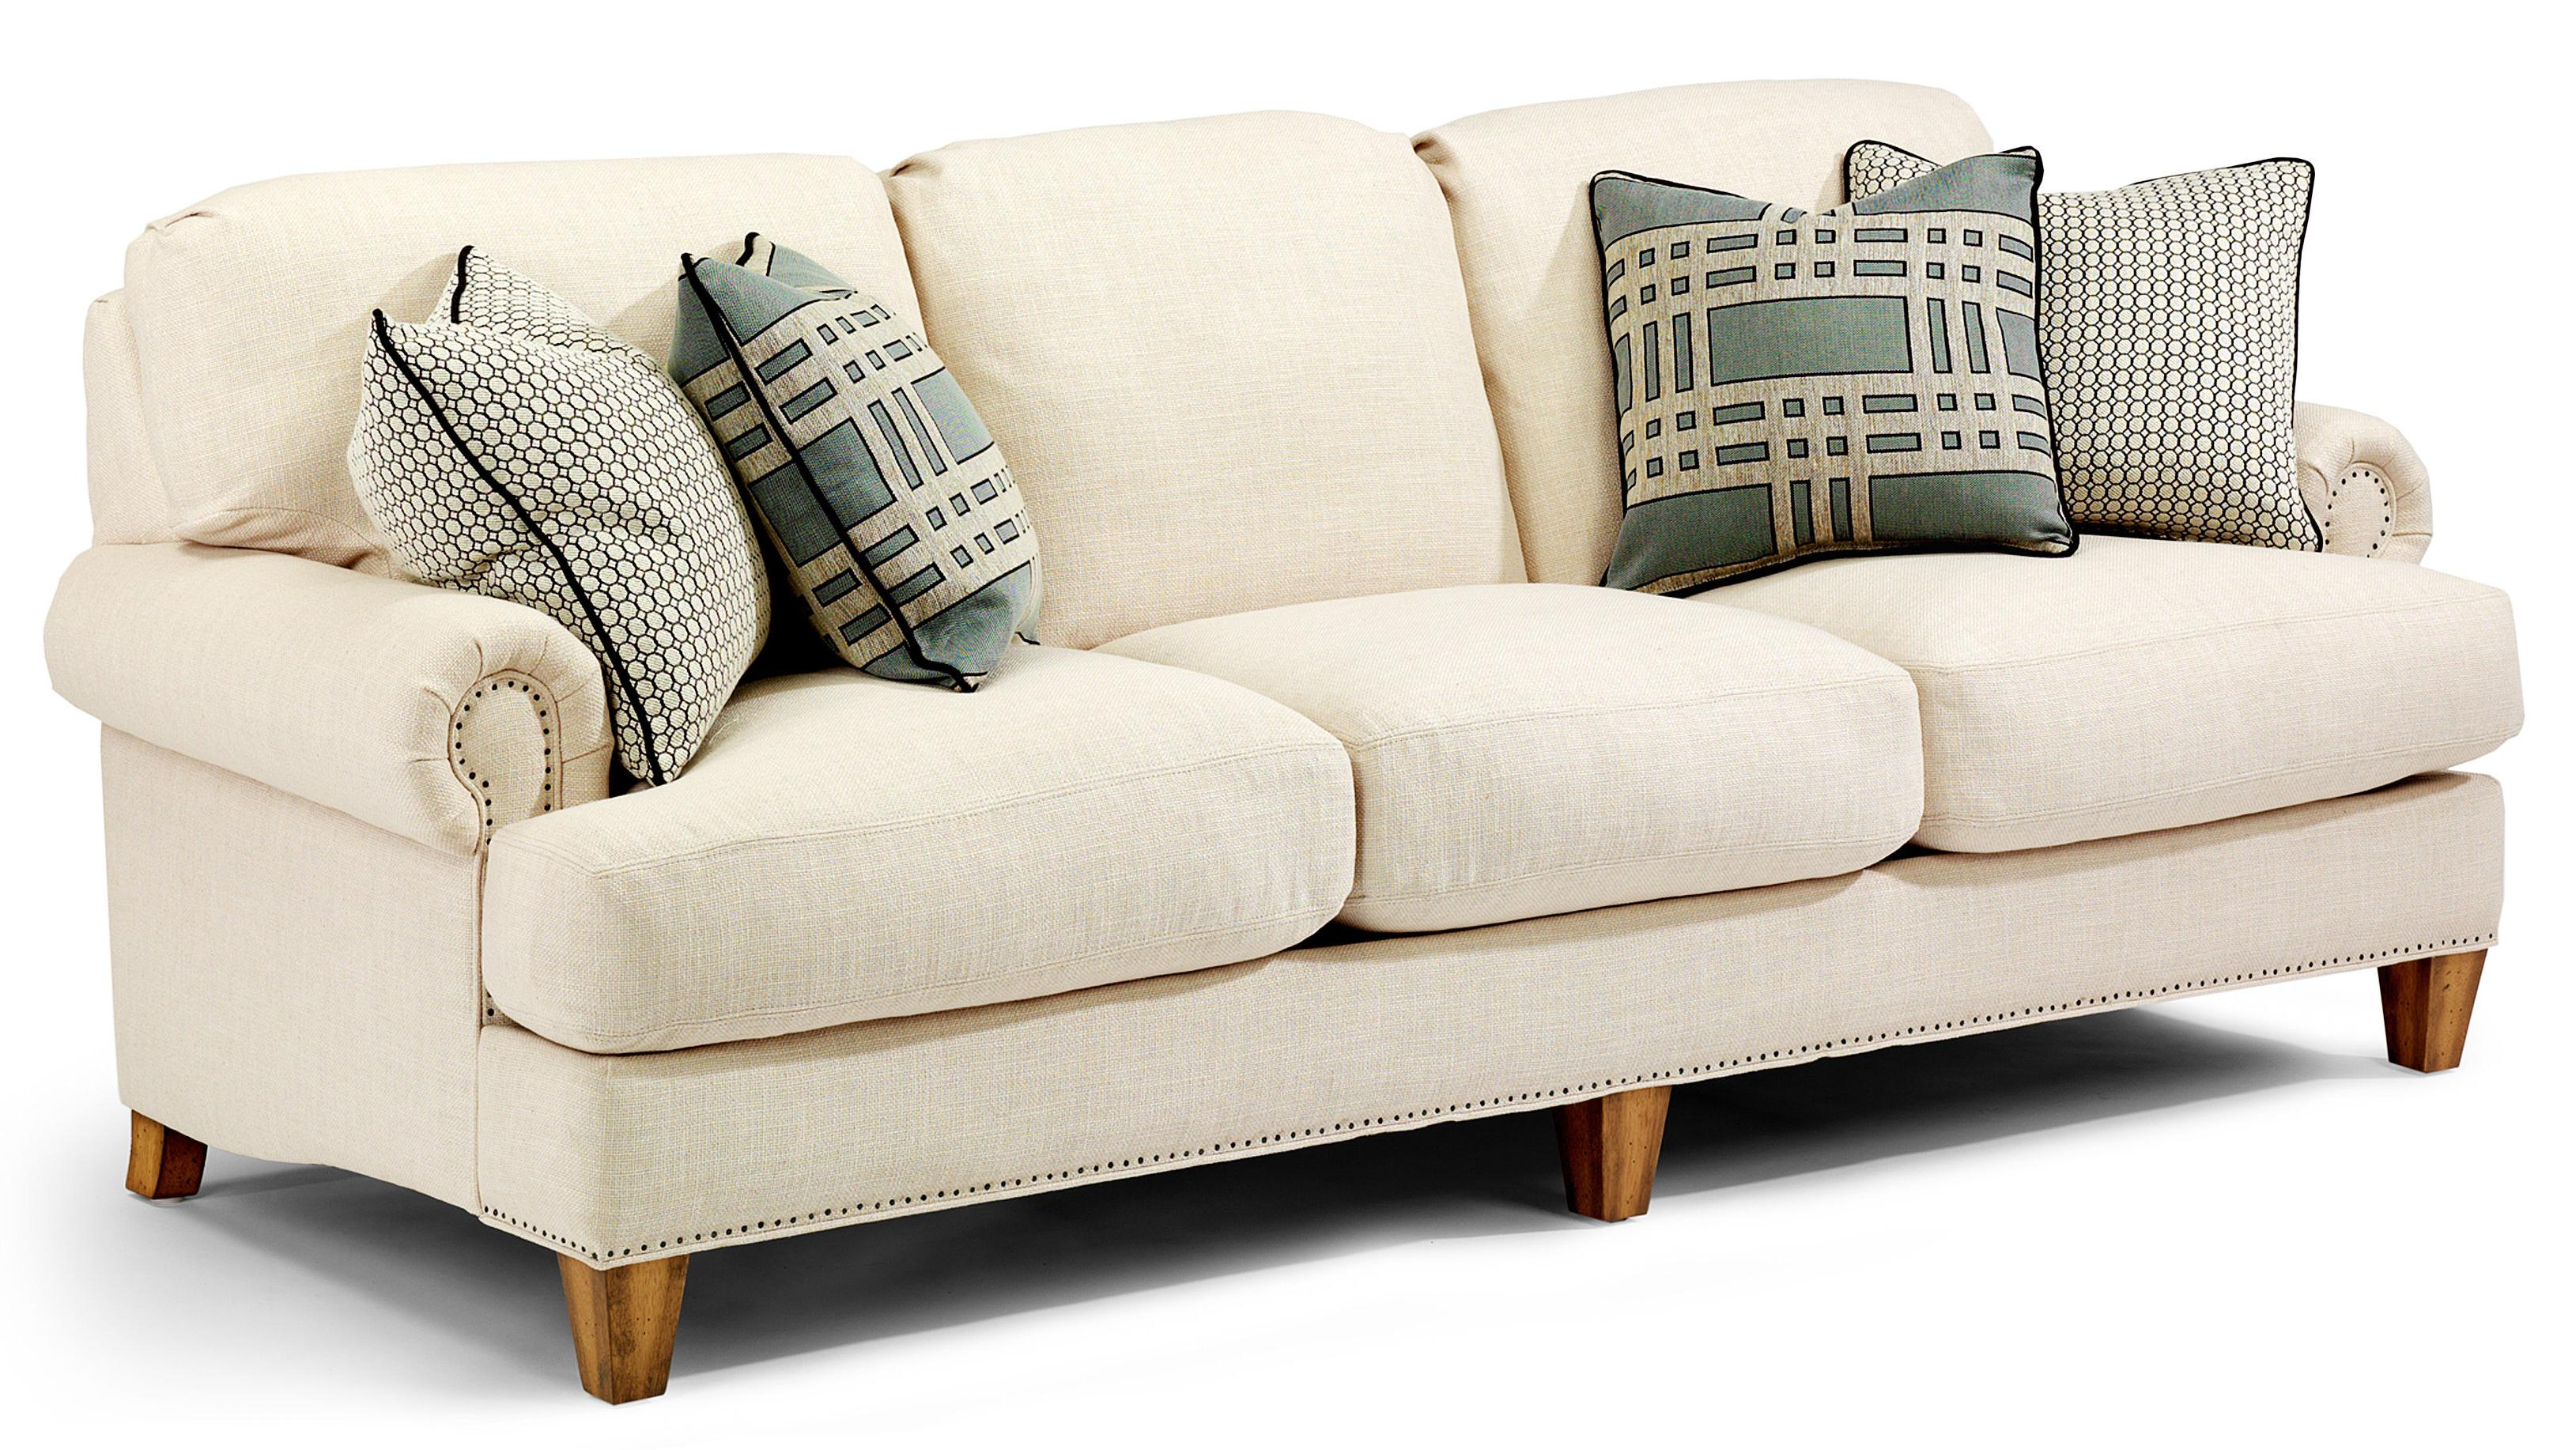 Flexsteel Luxury Transitional Sofa with Rolled arms and Nailhead     Flexsteel Luxury Transitional Sofa with Rolled arms and Nailhead Trim    AHFA   Sofa Dealer Locator